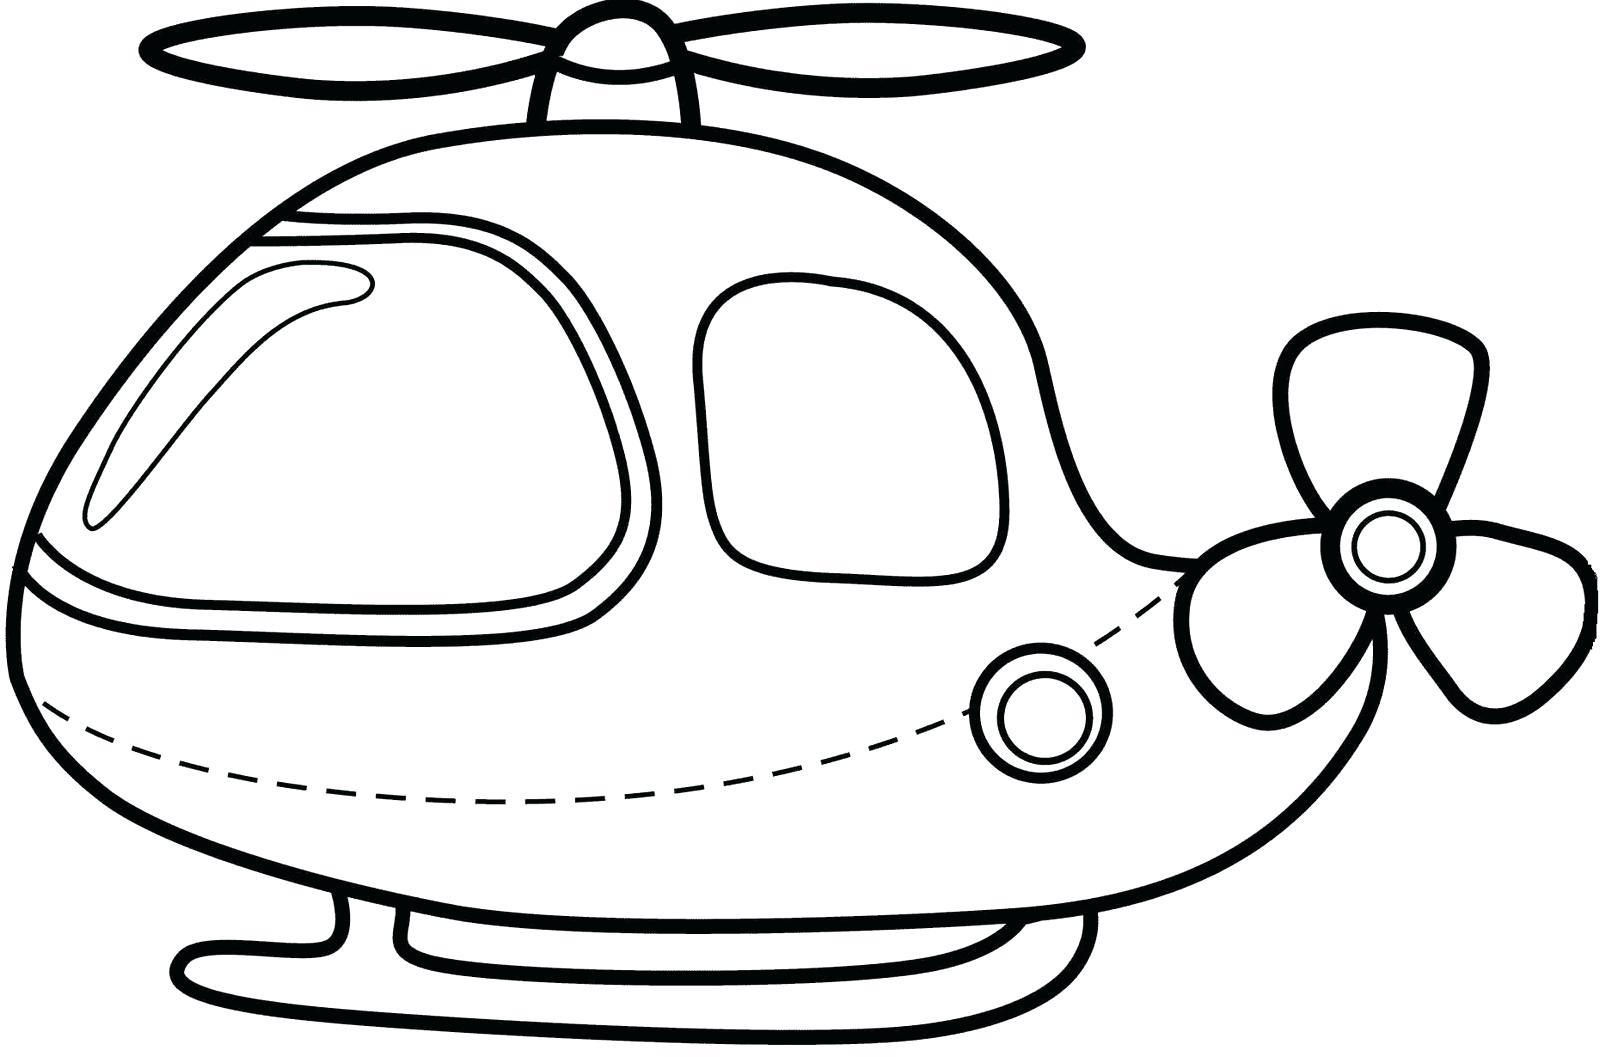 1600x1057 Coloring Pages Helicopter Coloring Pages Military Bell Ah Viper